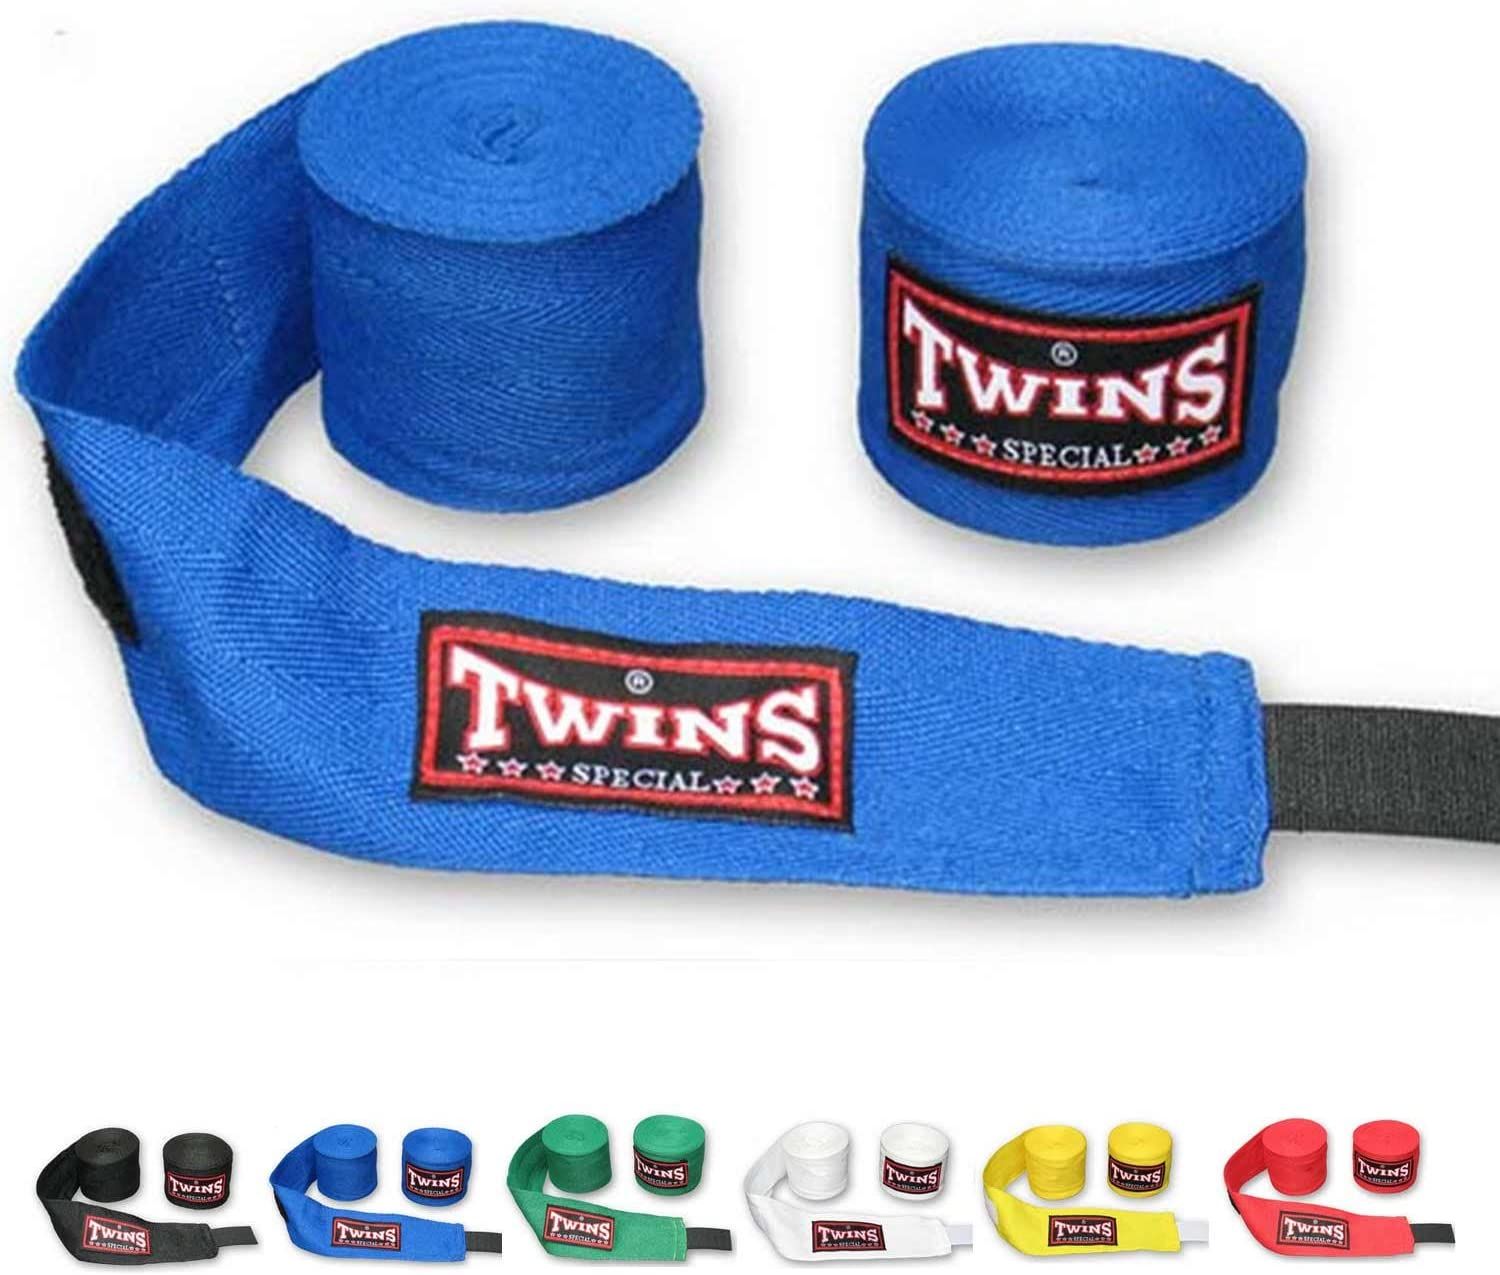 Twins Special CH-2 Bandages ELASTIC COTTON Martial Arts KICK BOXING HANDWRAPS